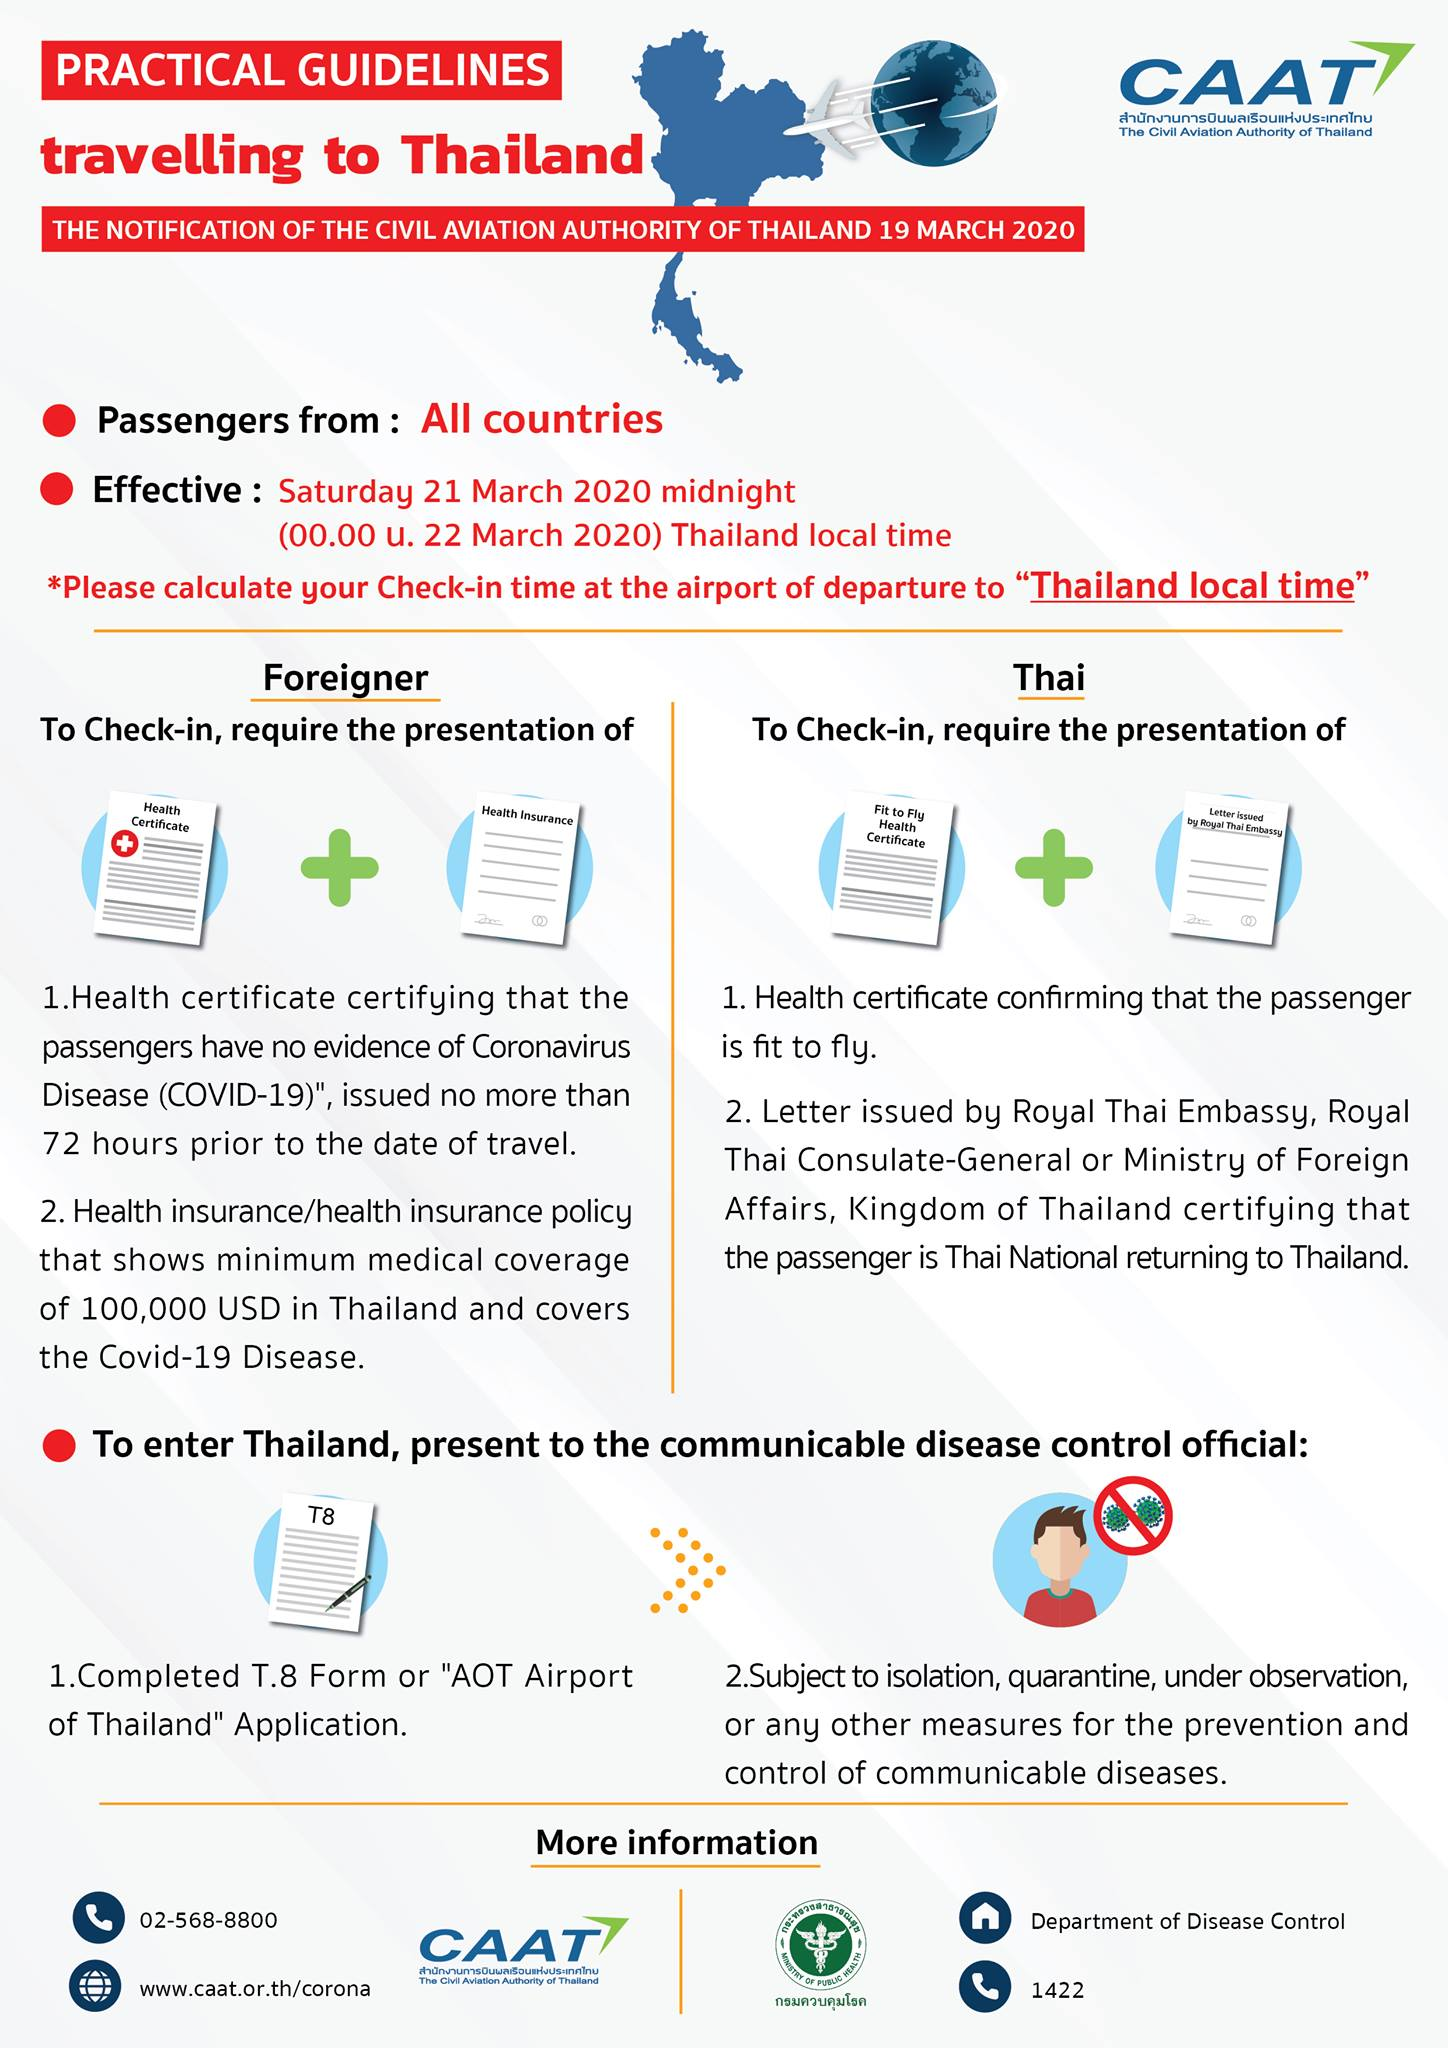 Thai Airways On Twitter Concise Wisdom We Would Like To Inform You That The Insurance Policy That Shows Minimum Medical Coverage In Thailand Of Coronavirus Disease Covid 19 In The Amount Not Less Than